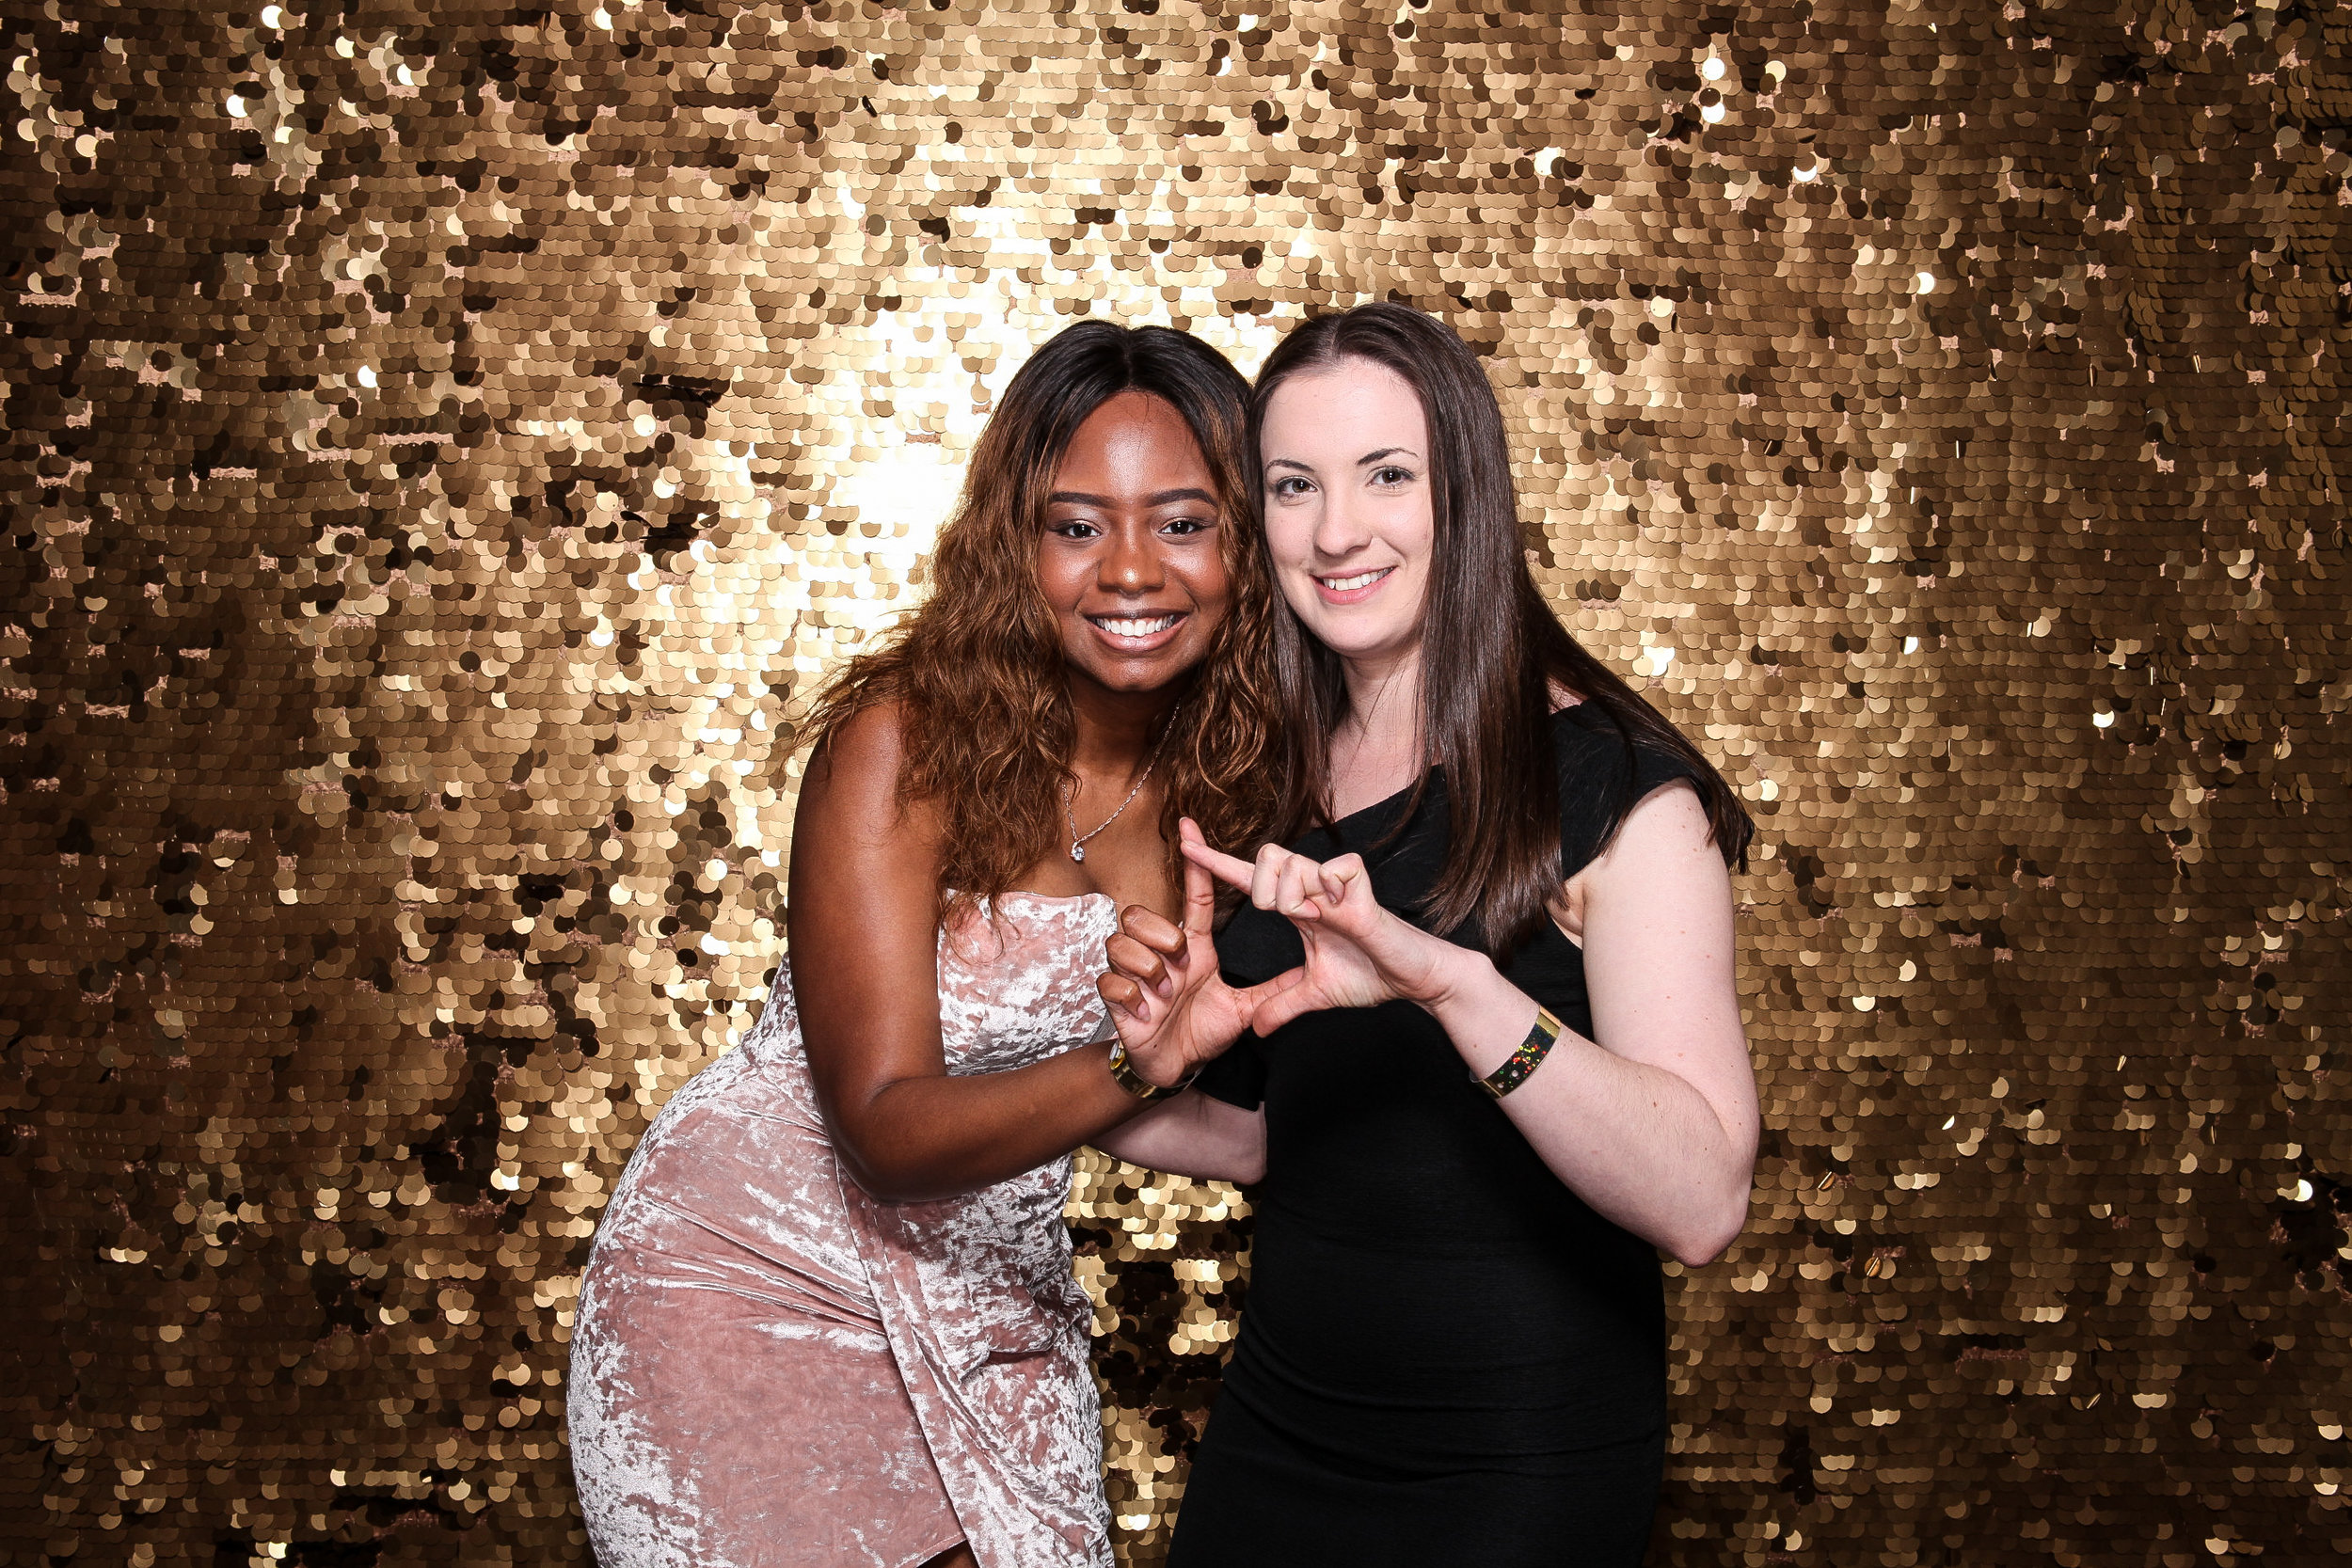 20190503_Adelphi_Senior_Formal-168.jpg